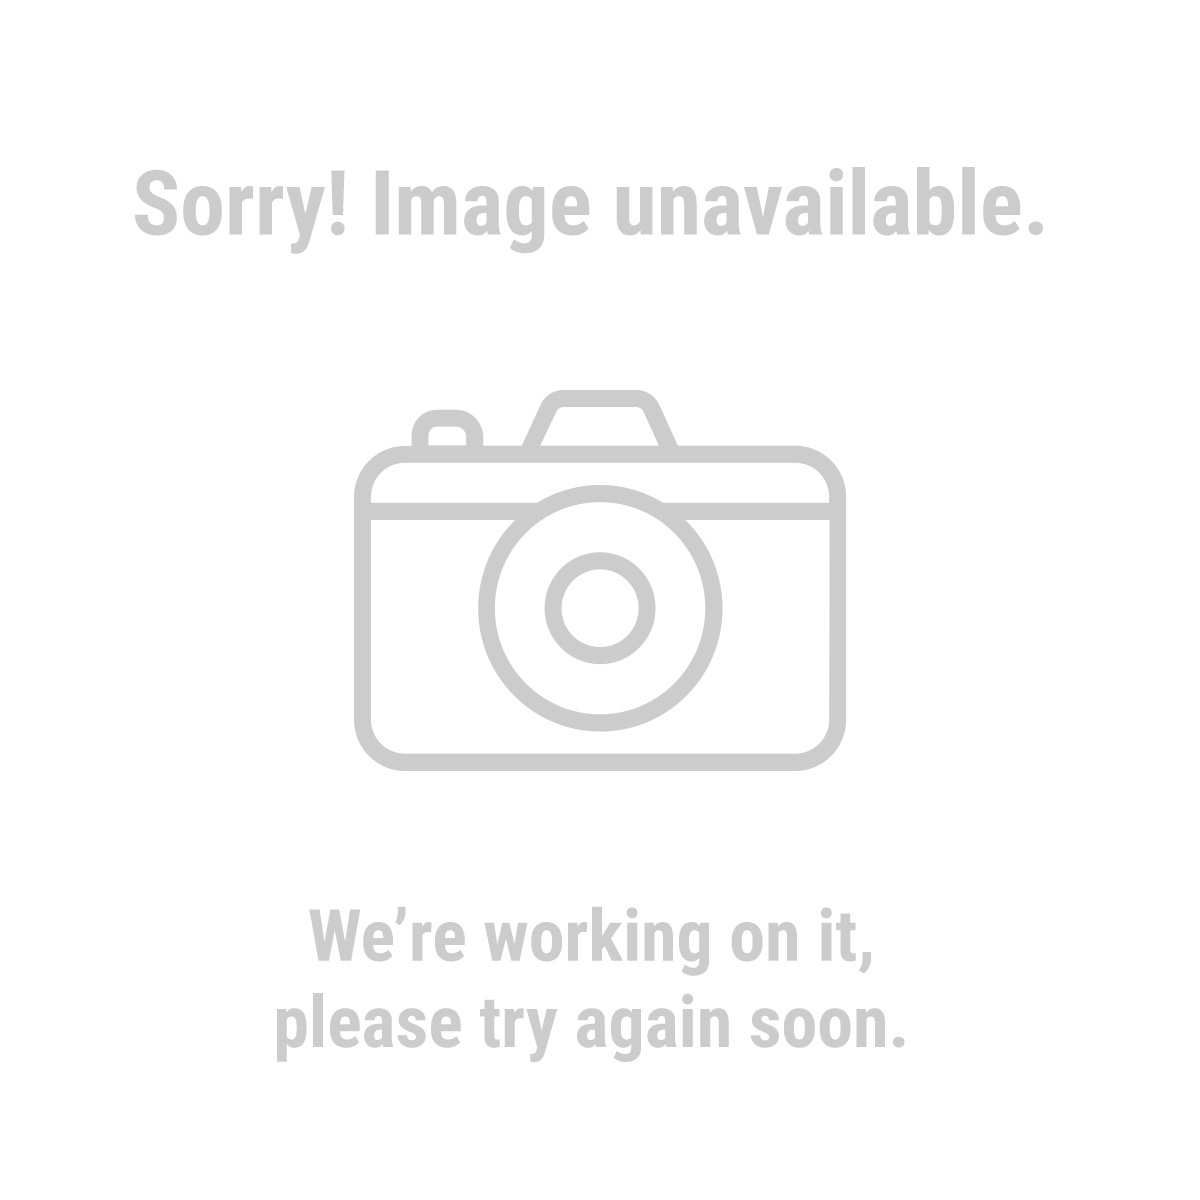 Central-Machinery 33686 1-1/2 Horsepower Heavy Duty Milling/Drilling Machine